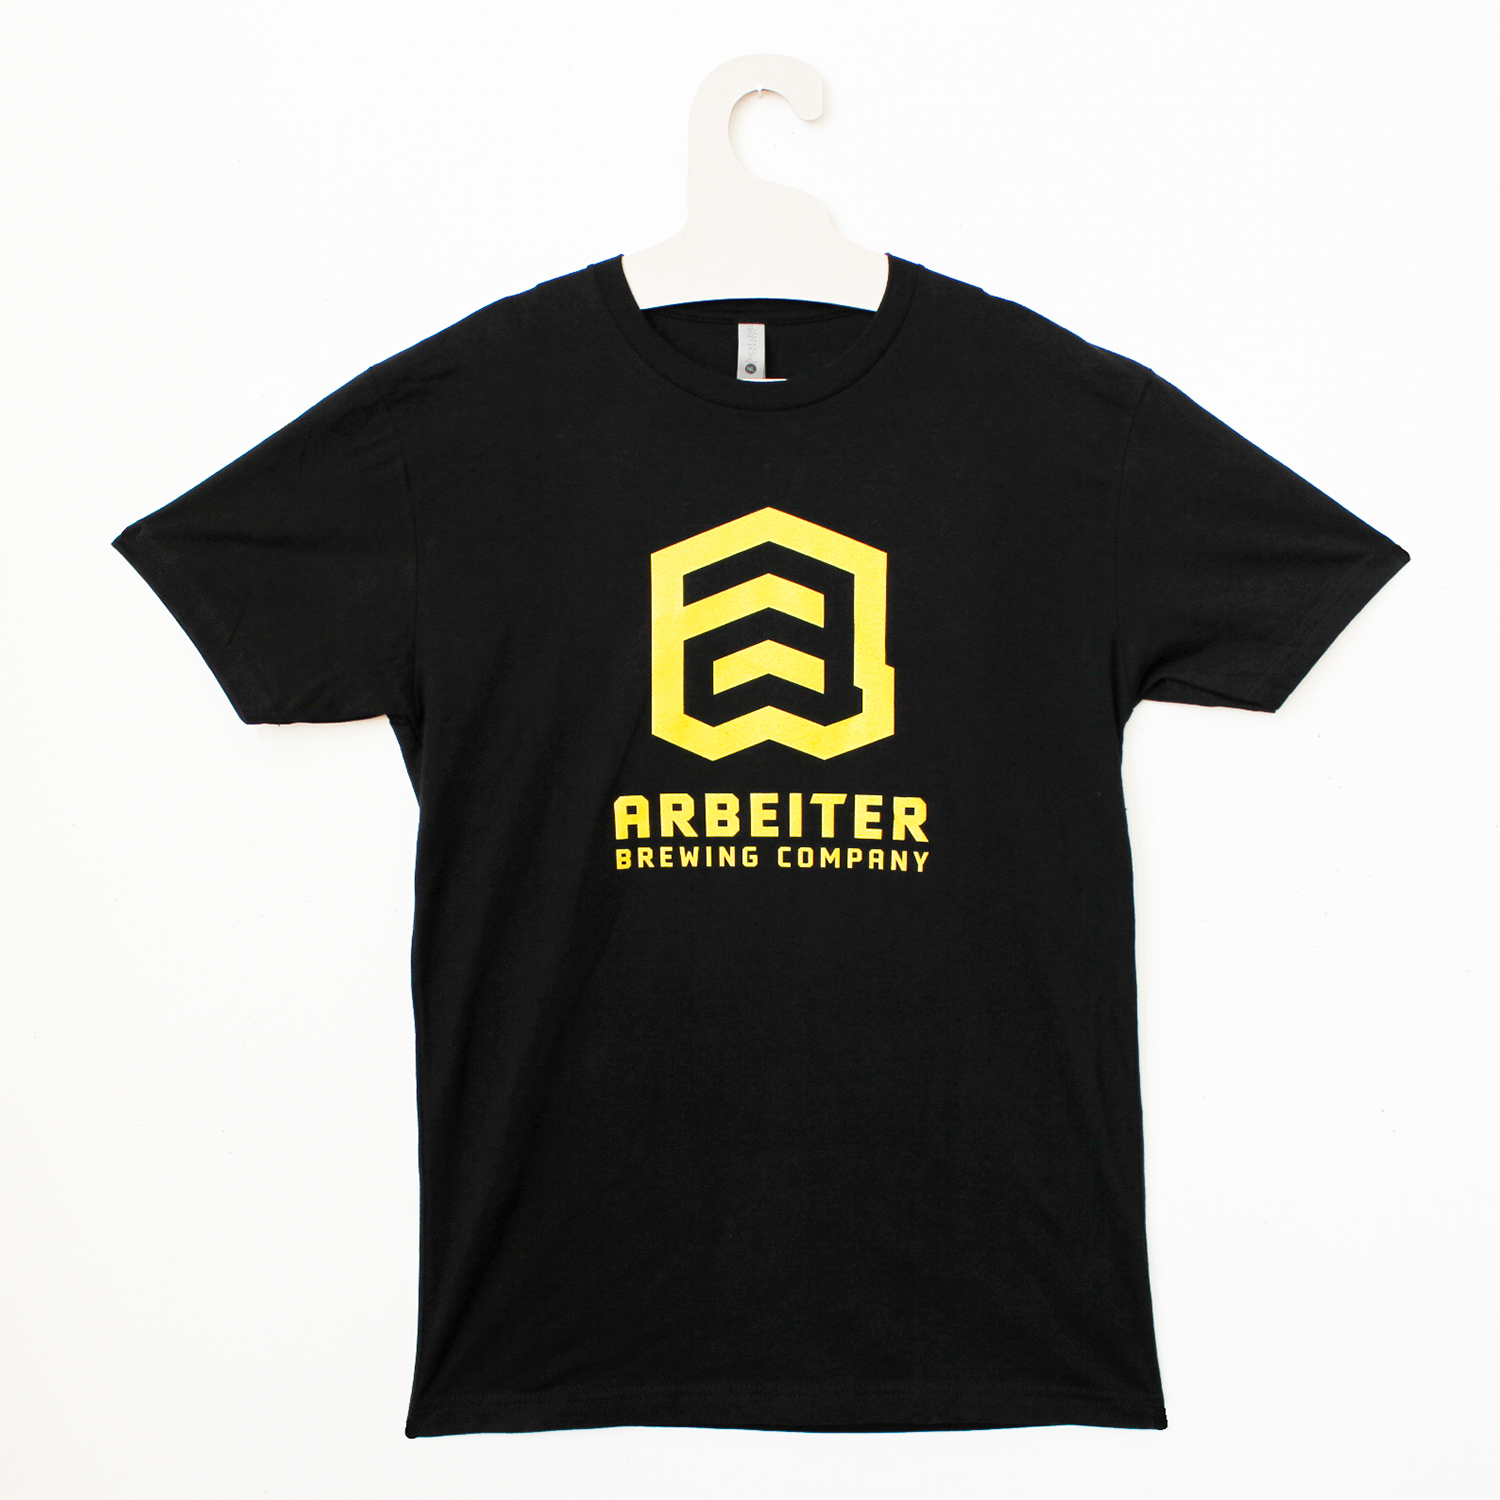 arbeiter-tshirt-black-logo-on-white-large